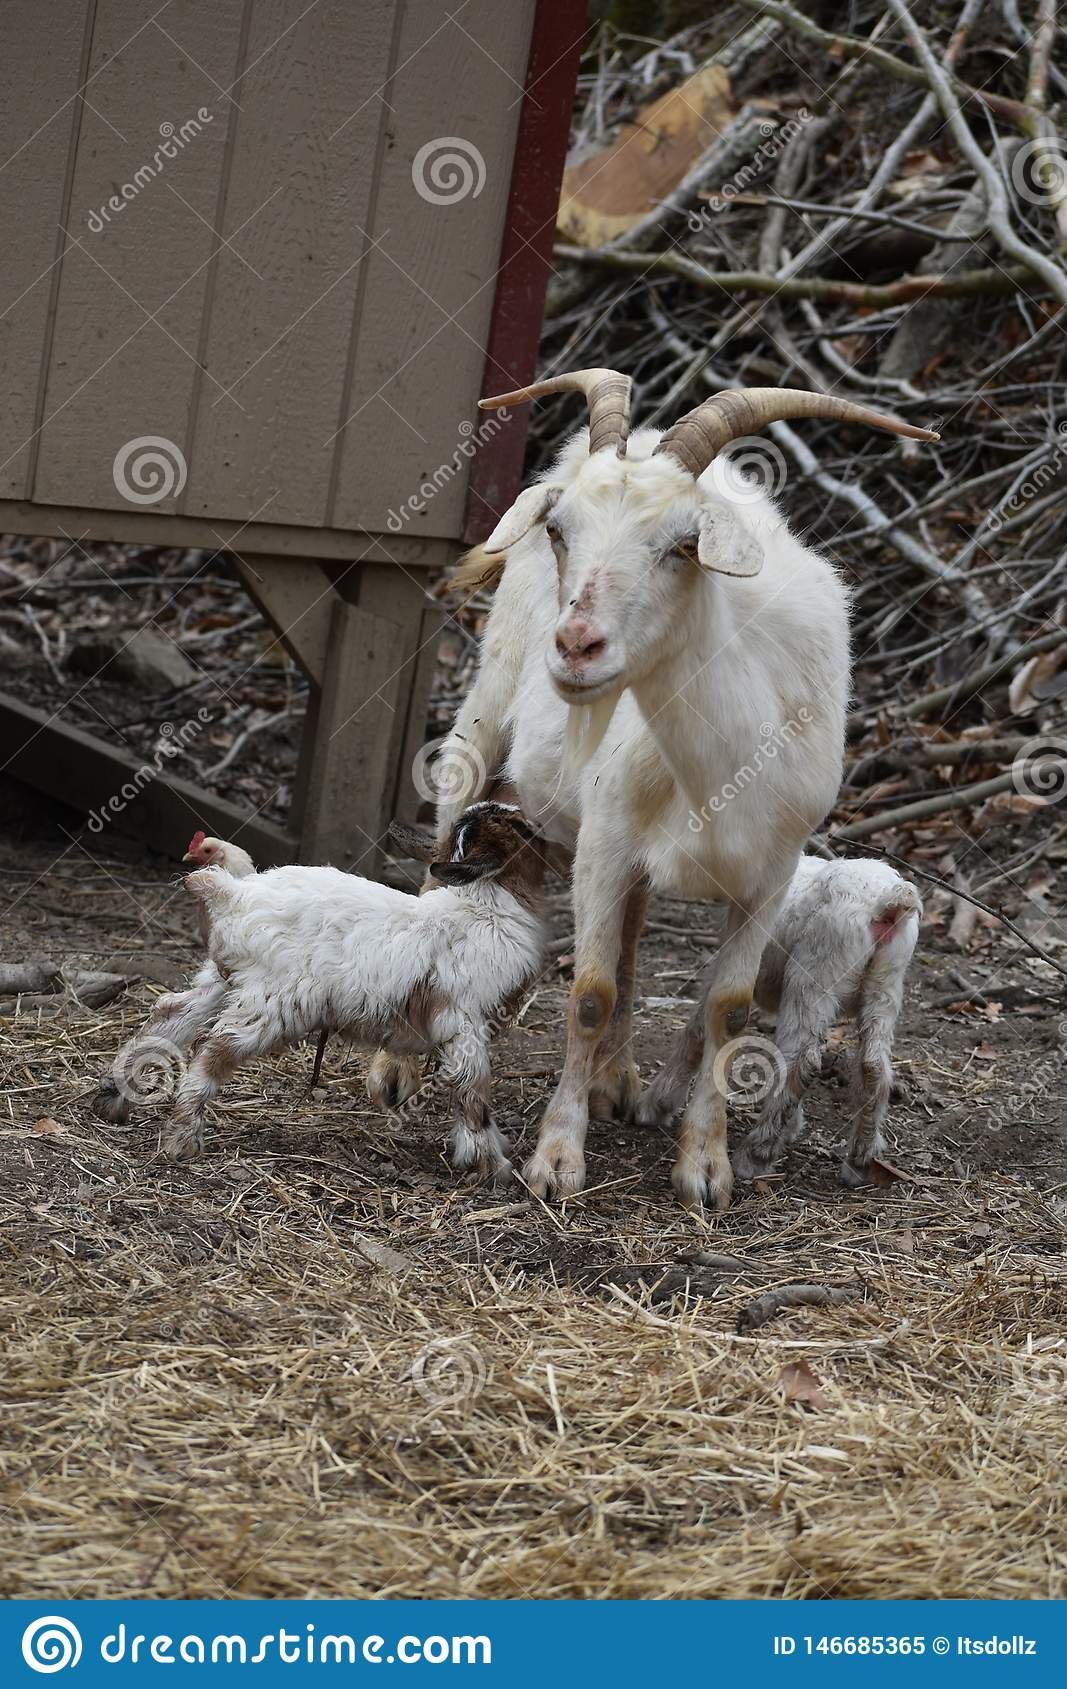 Mama And Baby Goats Feeding Stock Image - Image of west, have: 146685365